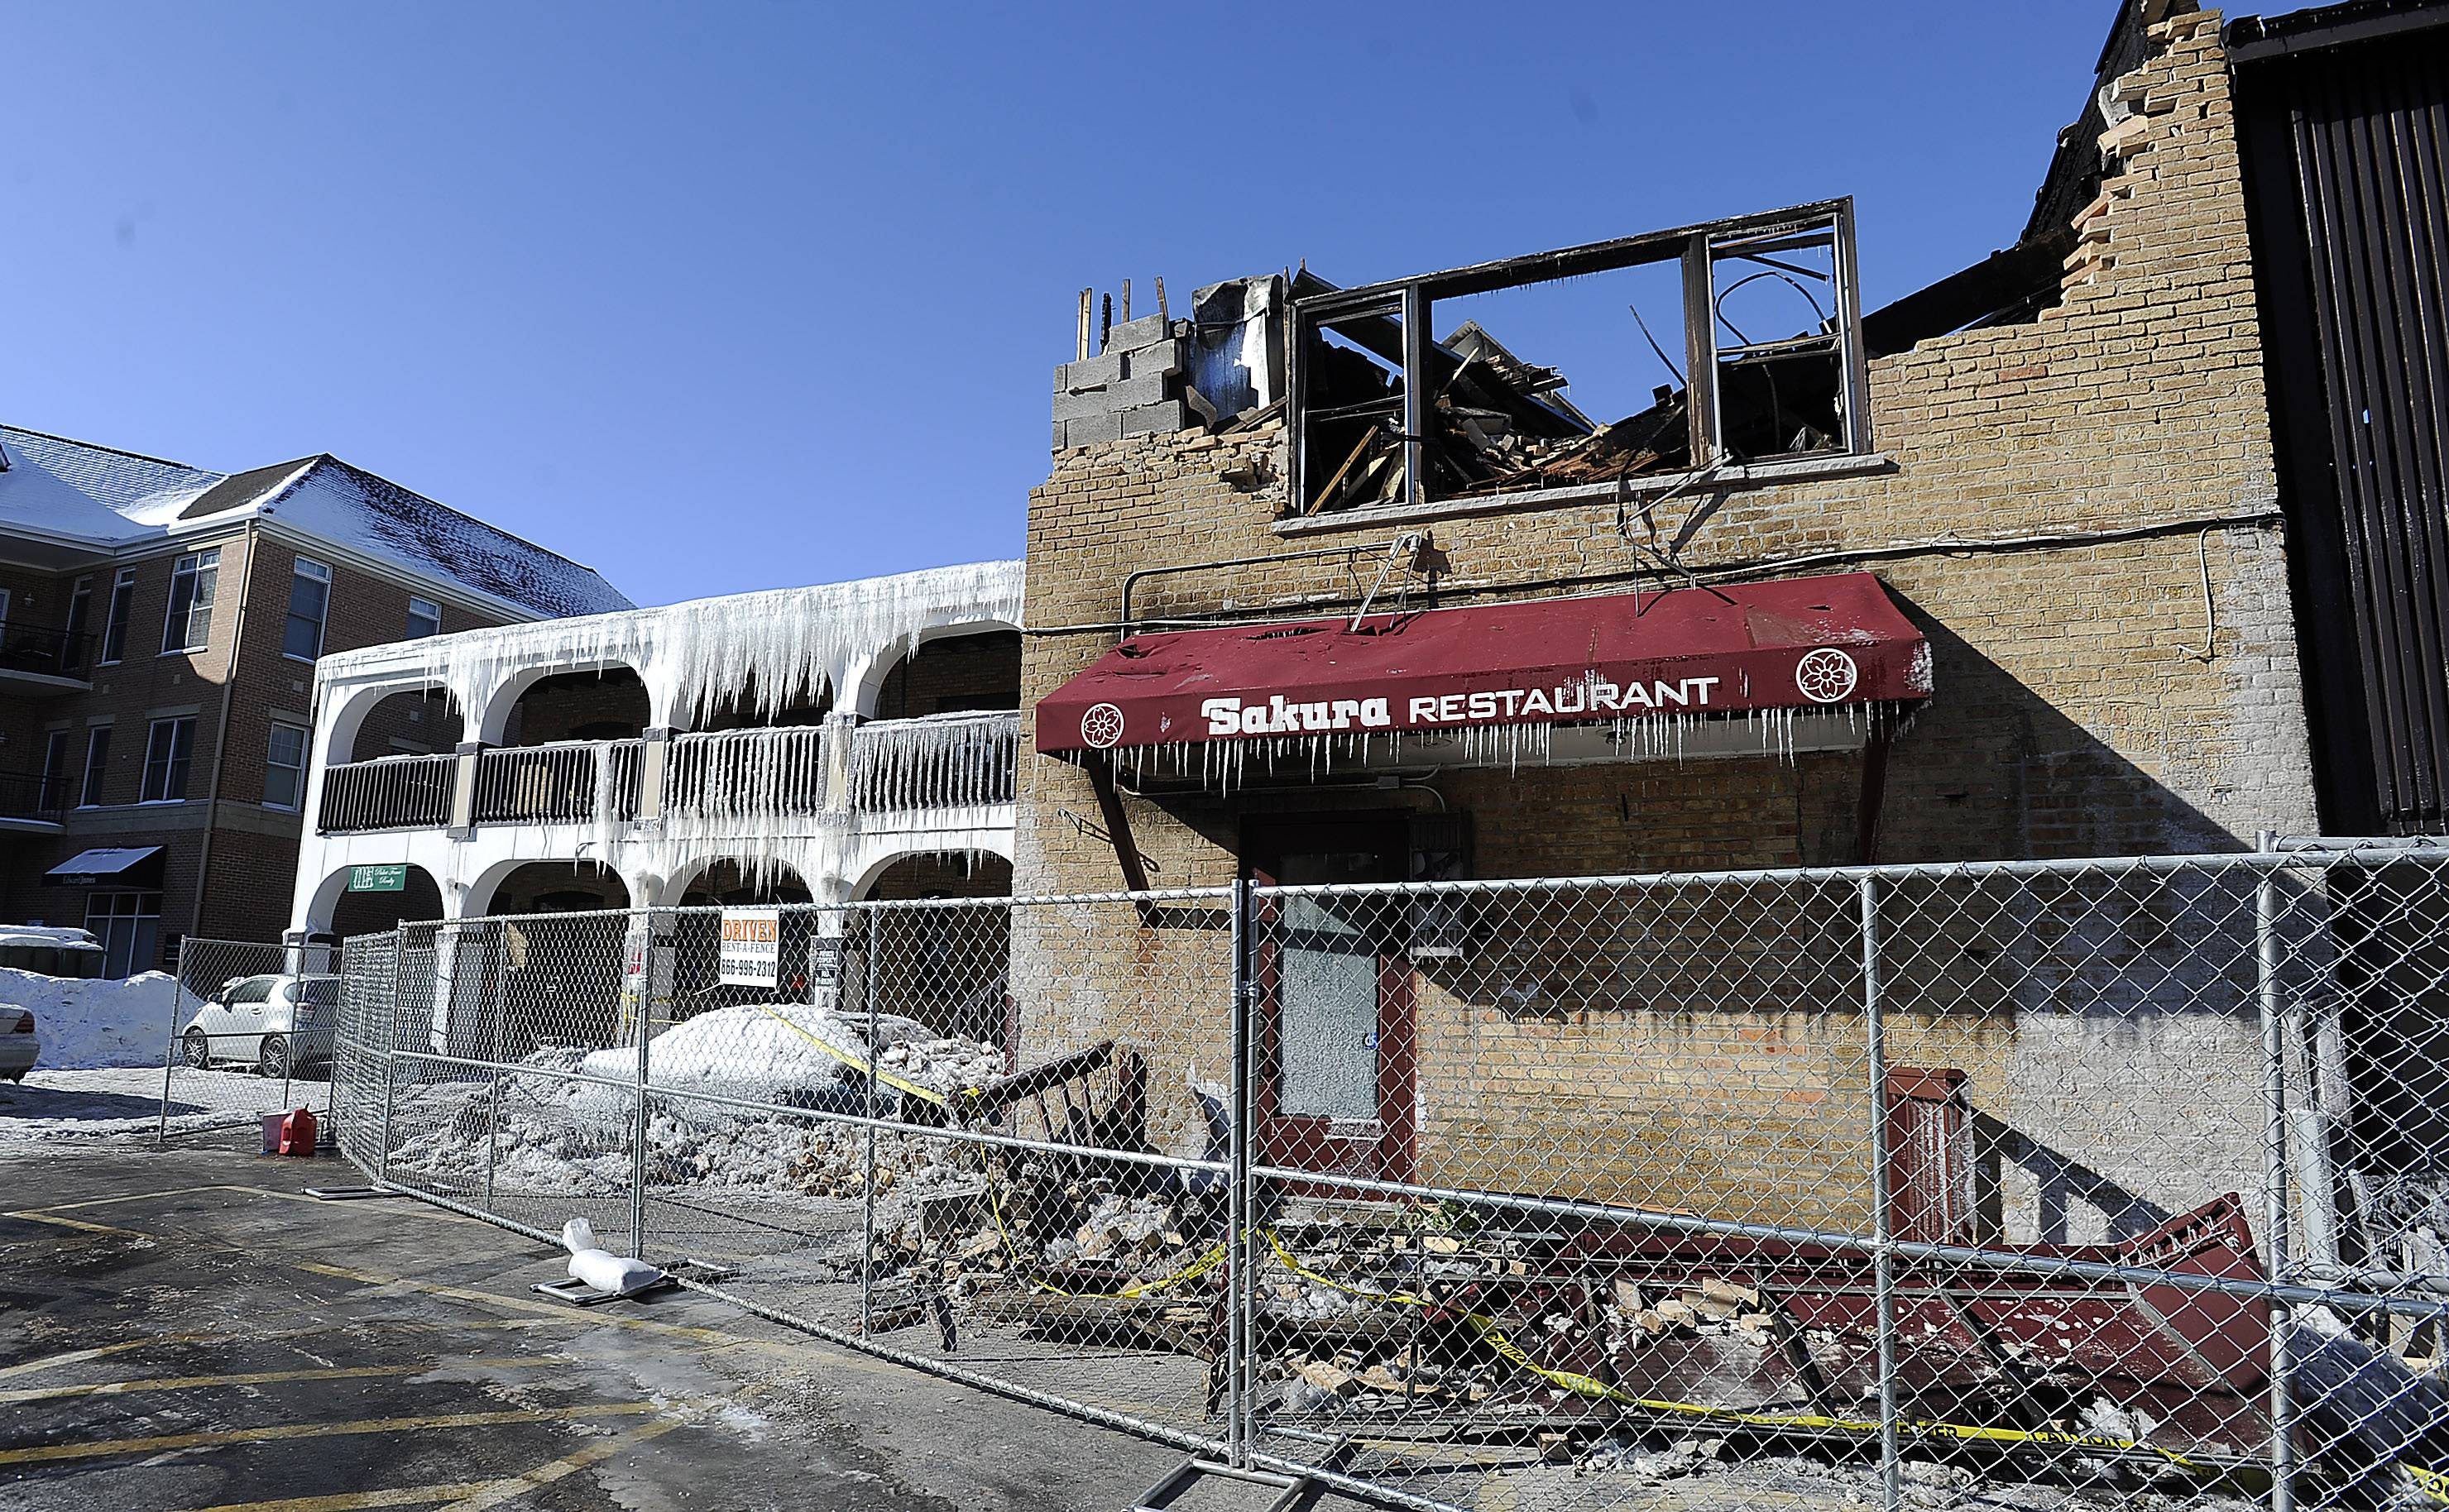 An Illinois state fire marshal's report says the Feb. 9 fire that began in the basement of Sakura Japanese Restaurant in downtown Mount Prospect was caused by the ignition of ordinary combustibles, but does not call it arson.